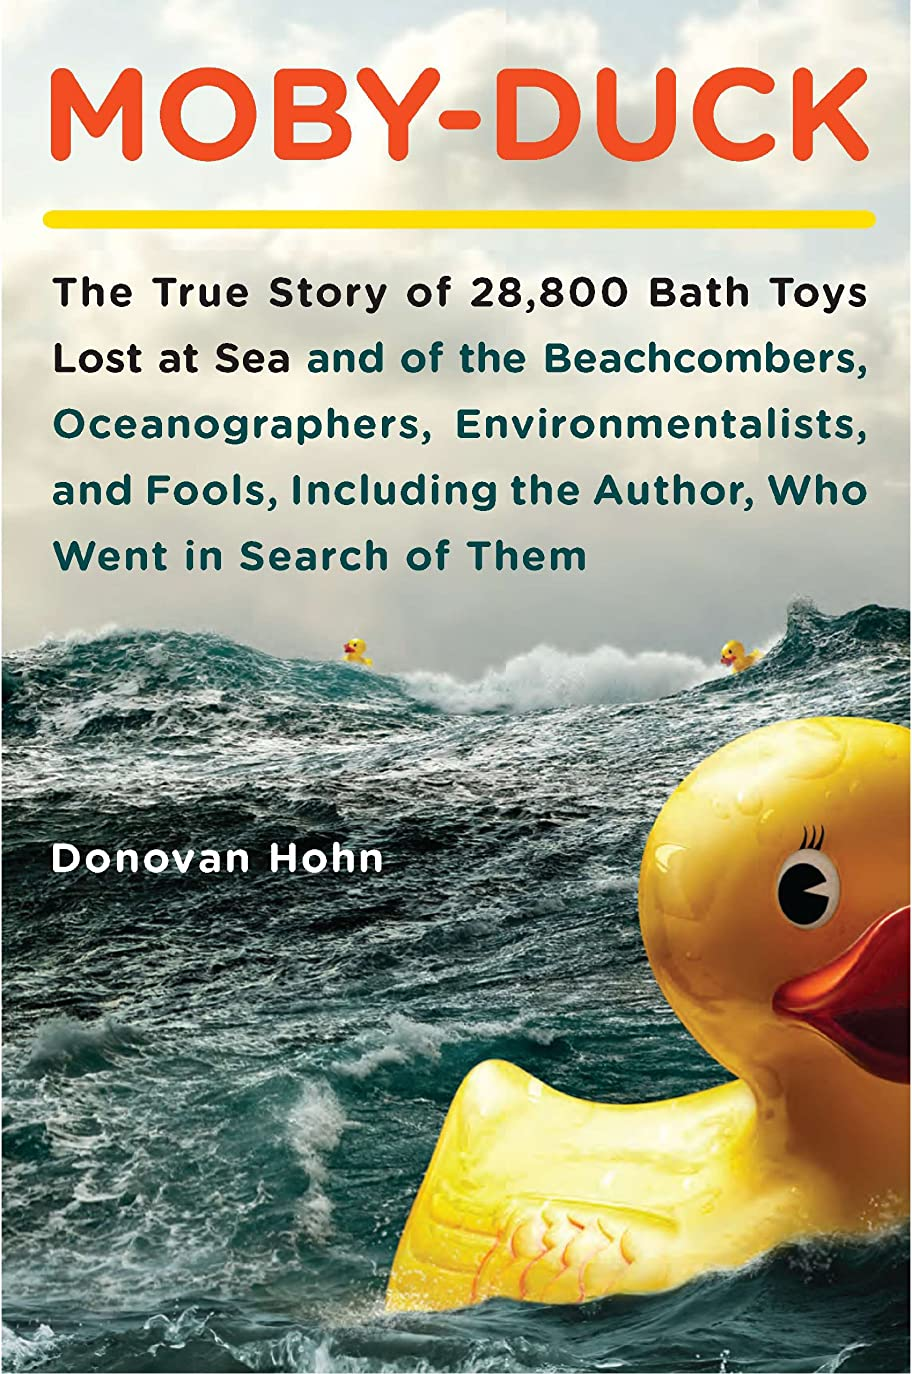 カテゴリー才能のある吐くMoby-Duck: The True Story of 28,800 Bath Toys Lost at Sea & of the Beachcombers, Oceanograp hers, Environmentalists & Fools Including the Author Who Went in Search of Them (English Edition)